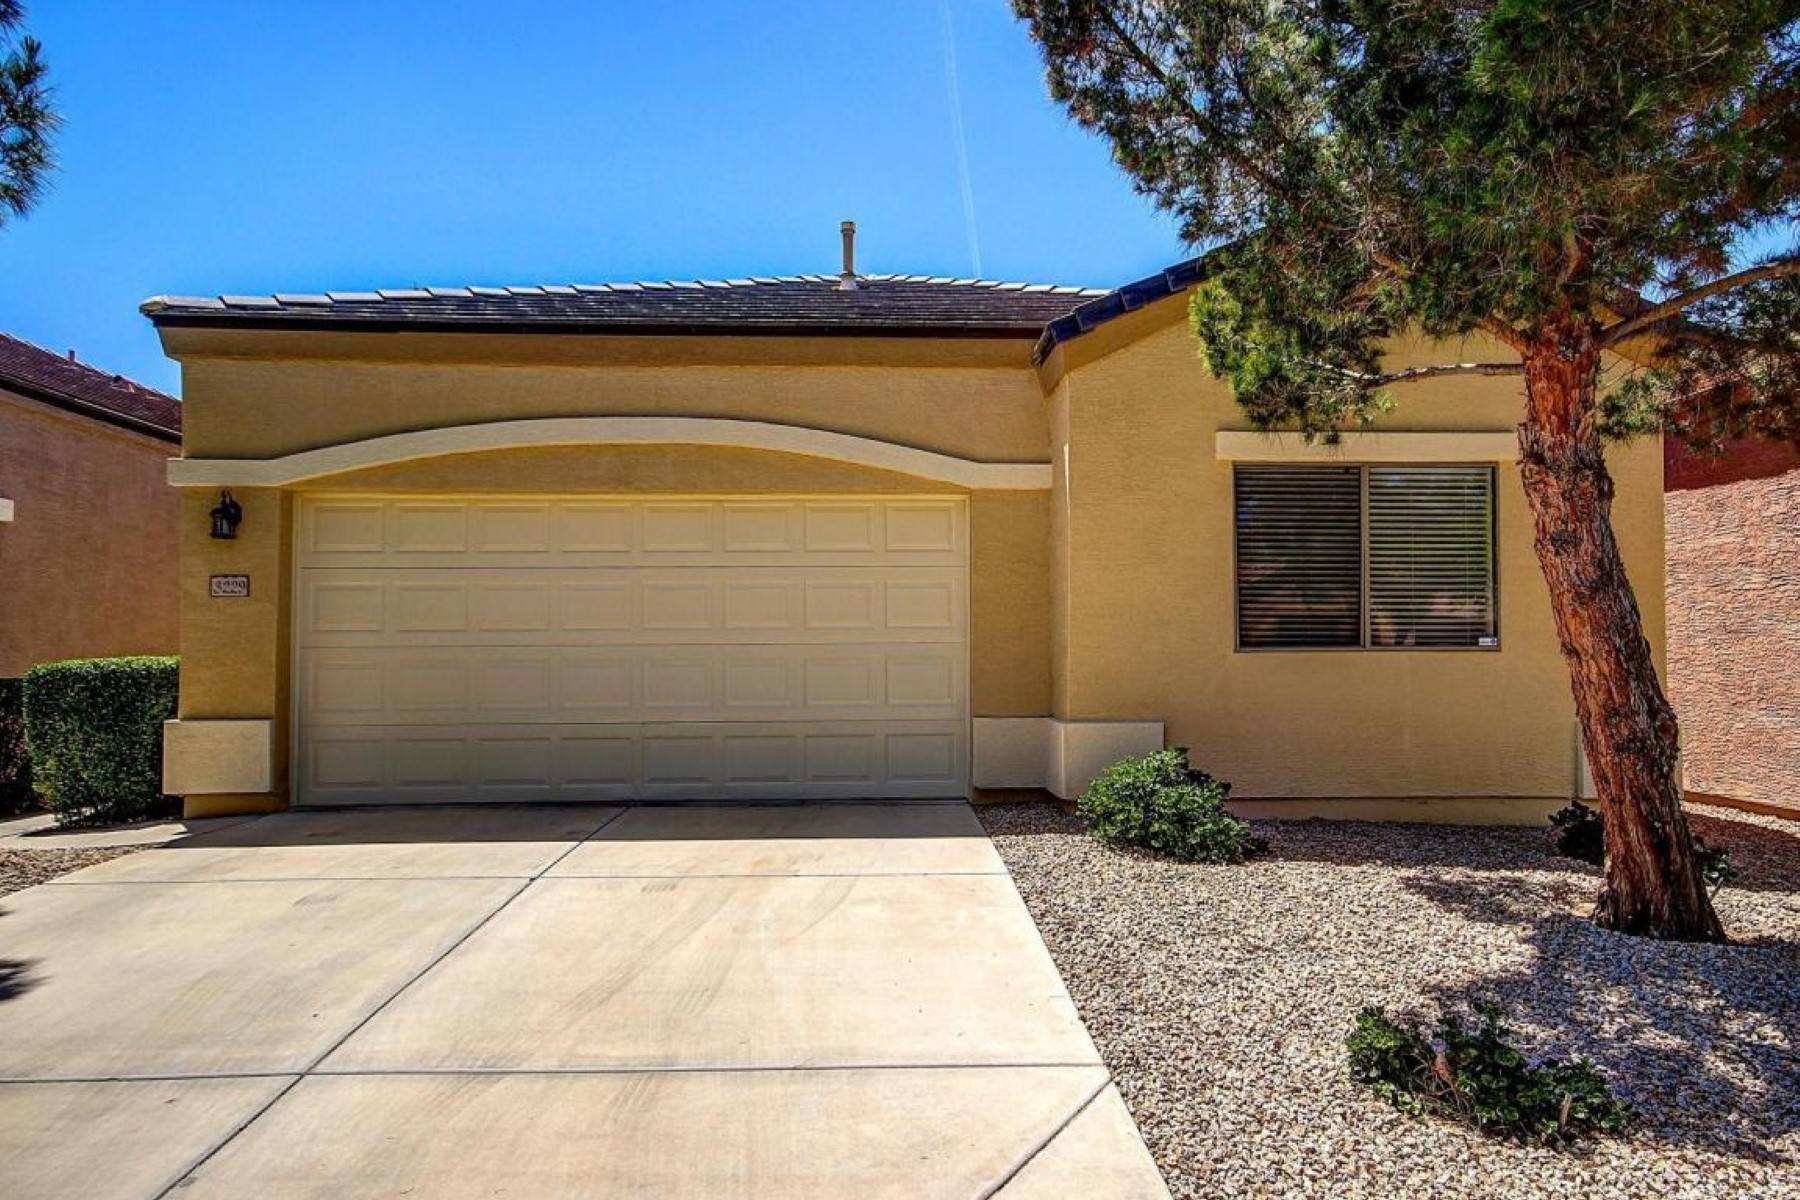 Single Family Home for Sale at Charming, move-in ready home in the gated Ravenswood community 3229 E Maldondo Dr Phoenix, Arizona, 85042 United States